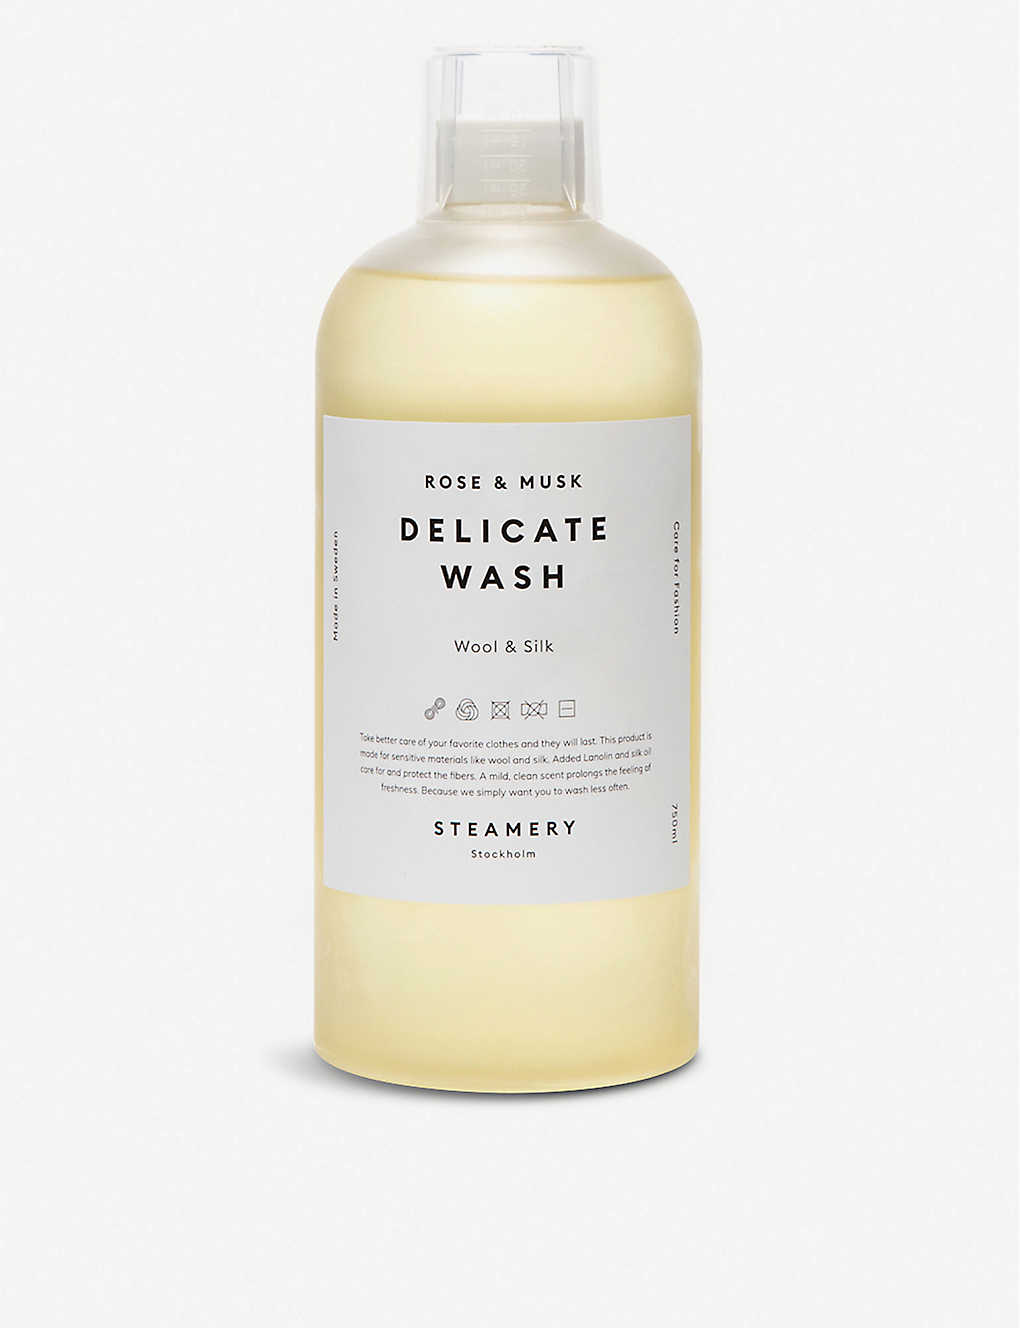 STEAMERY: Delicate Wash detergent 750ml